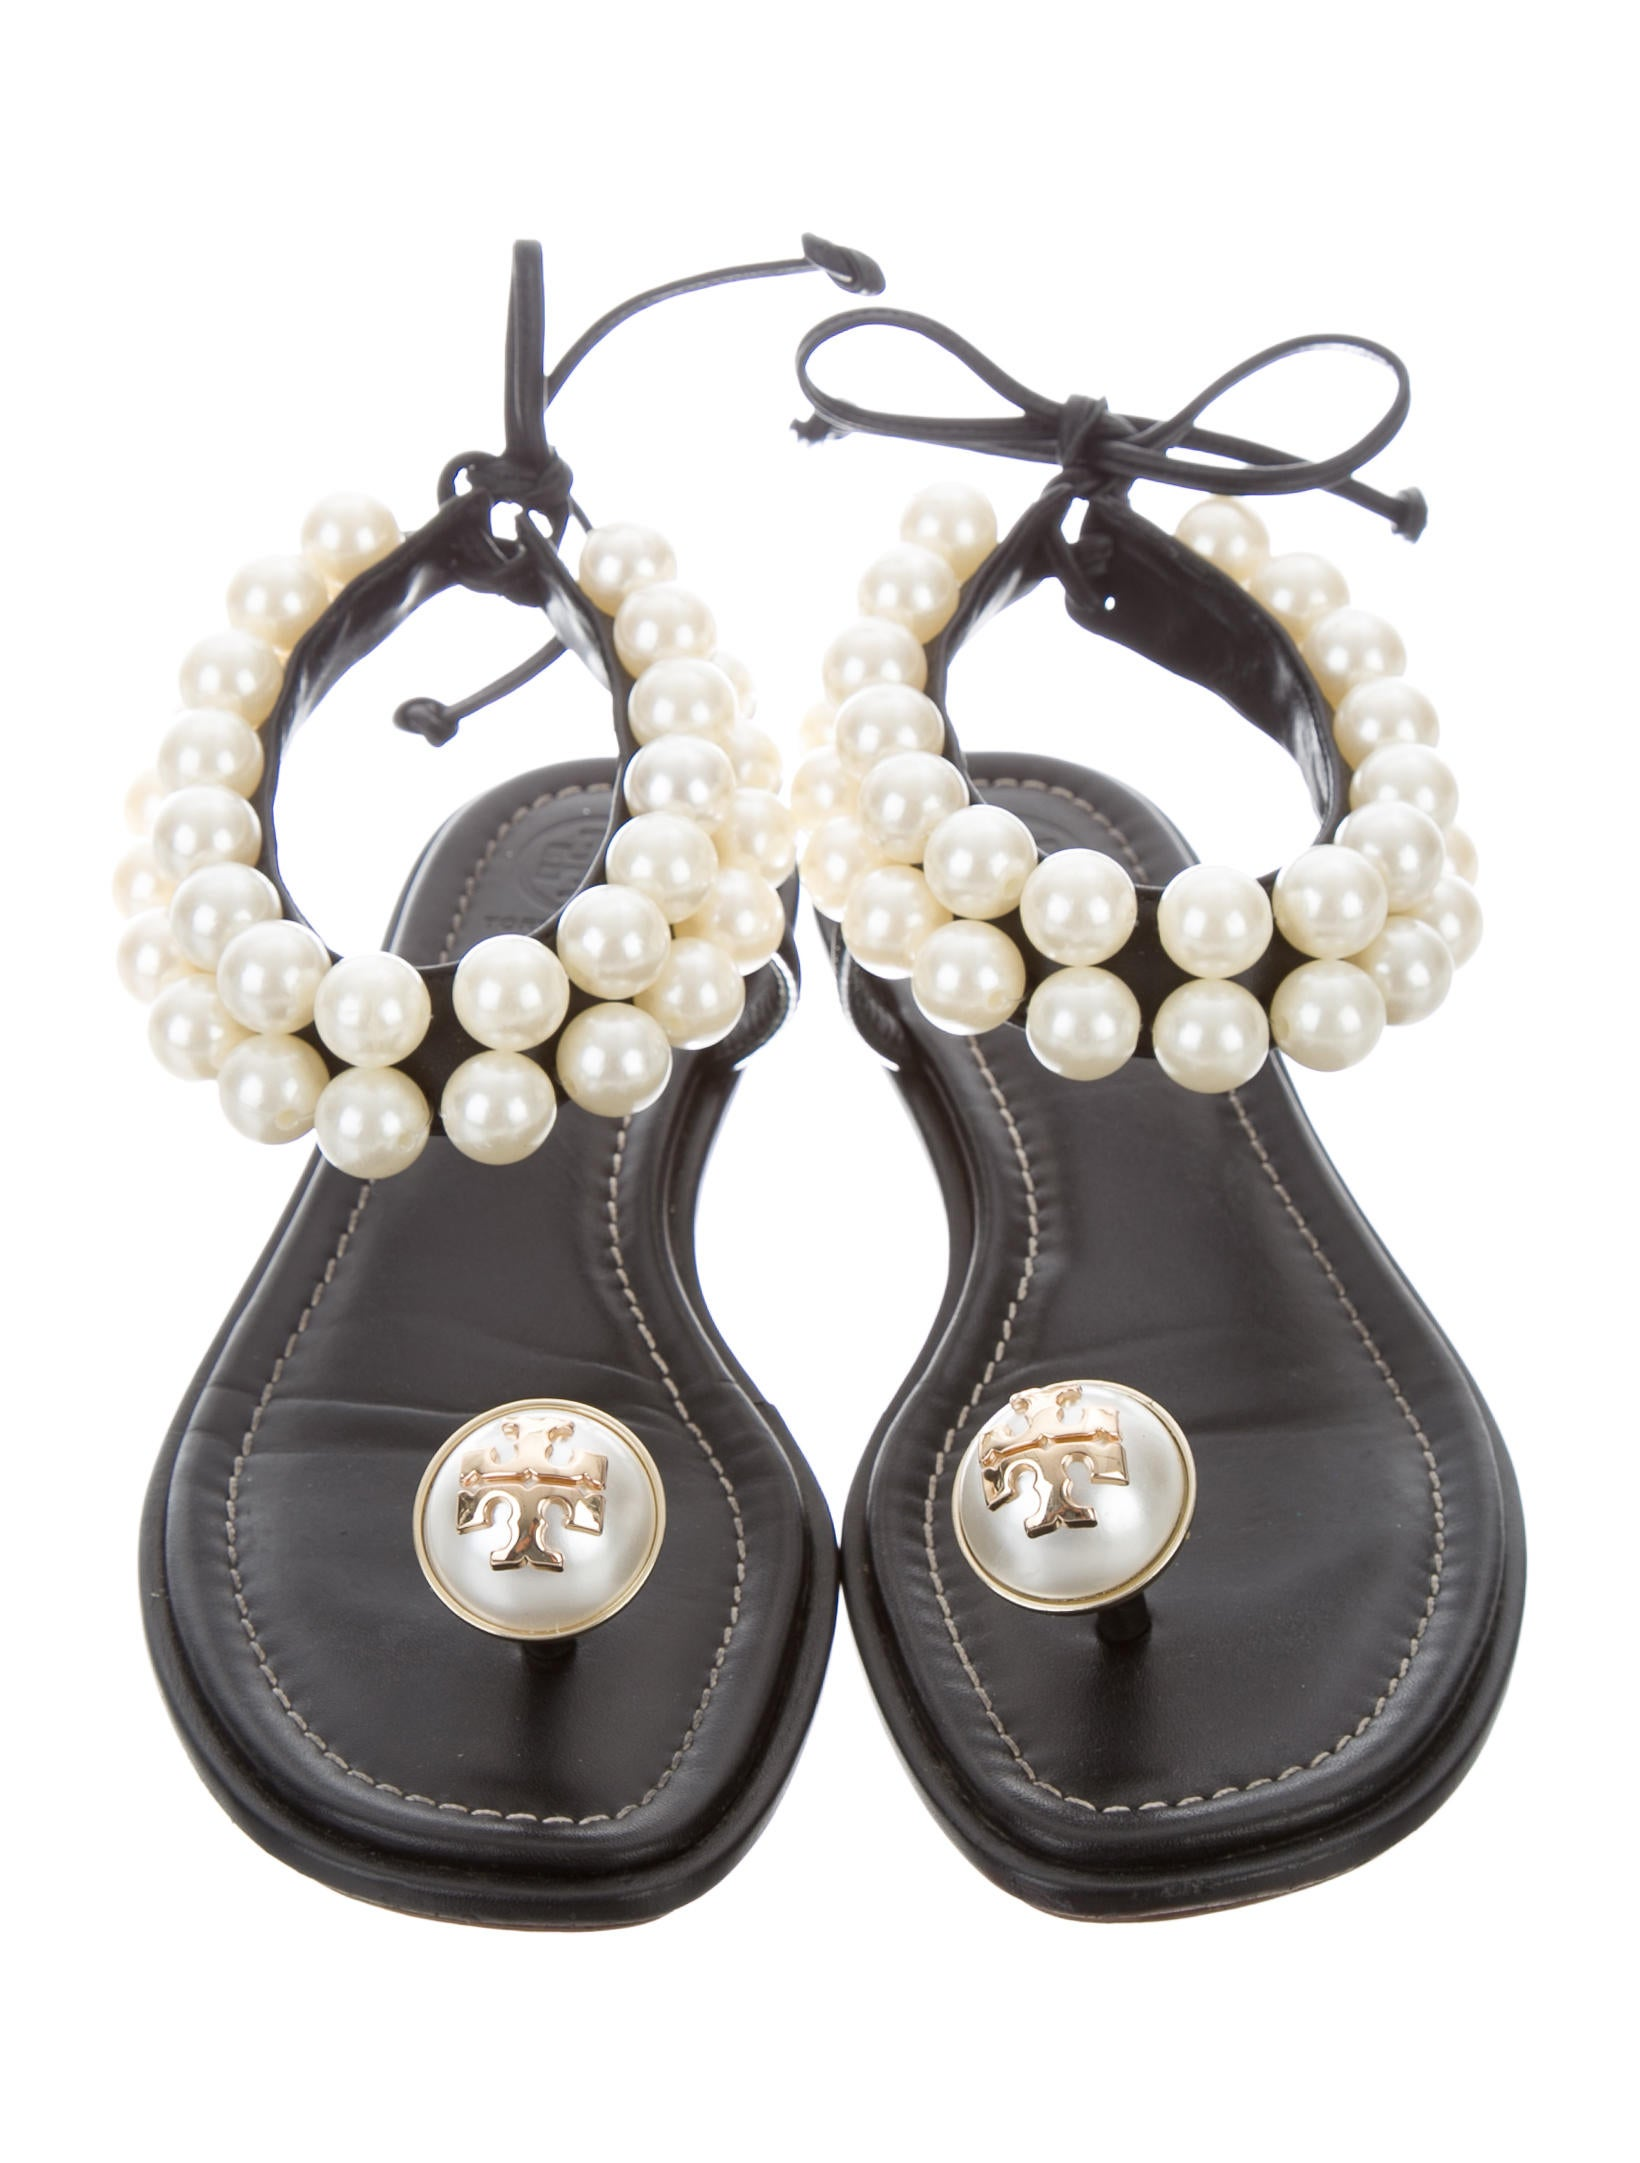 Tory Burch Kids Shoes